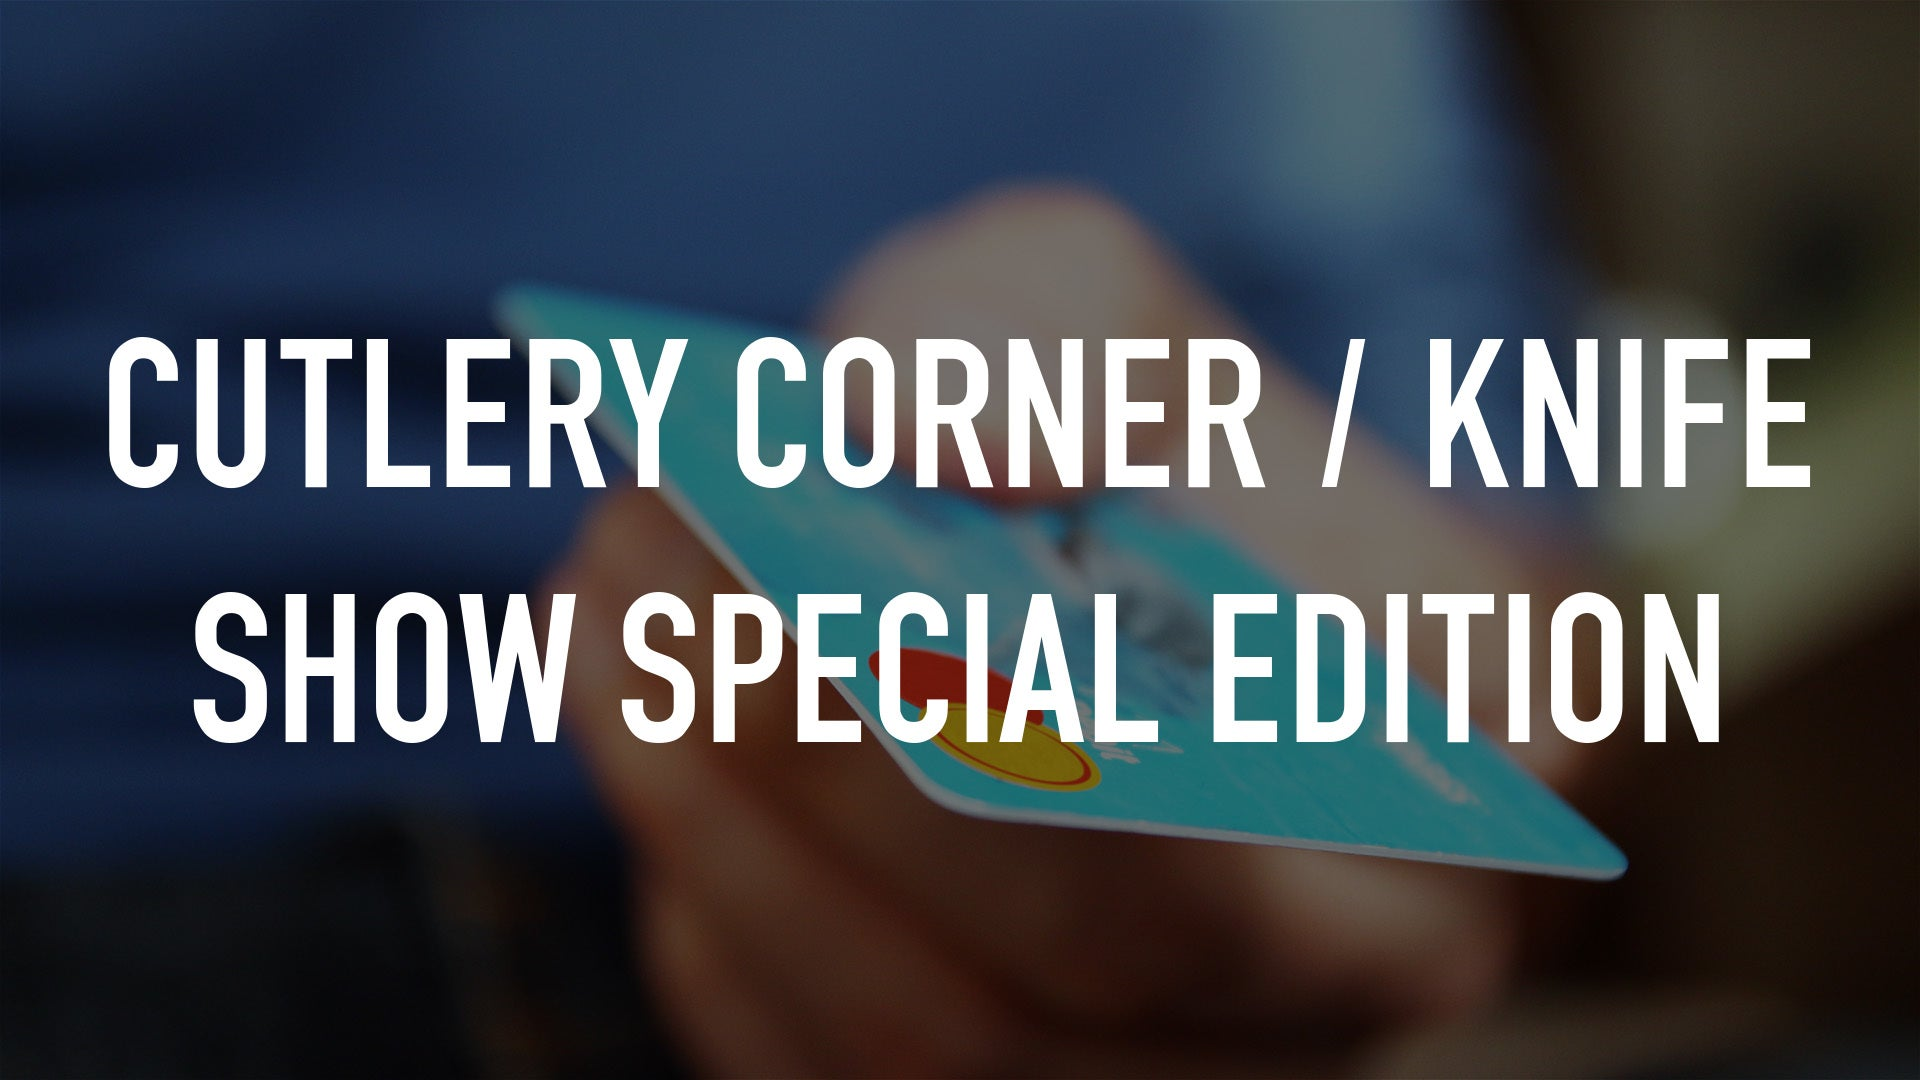 Cutlery Corner / Knife Show Special Edition